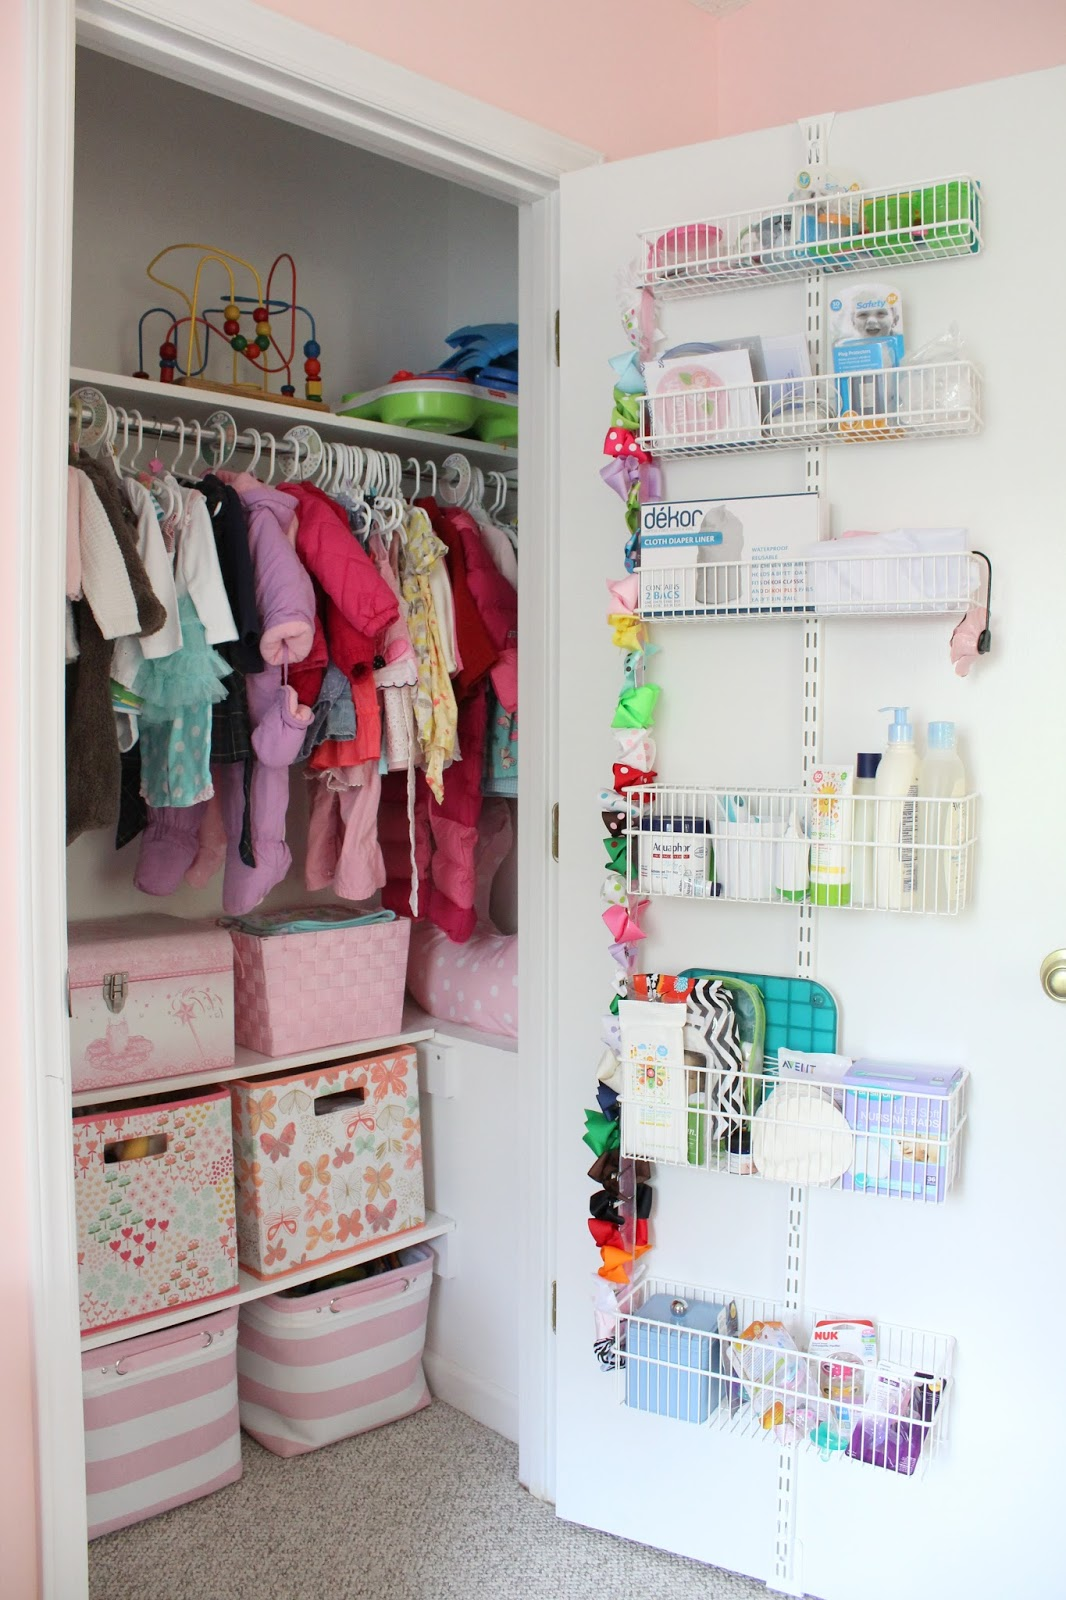 It 39 s a horvath 39 s life baby girl nursery reveal for Baby organizer ideas